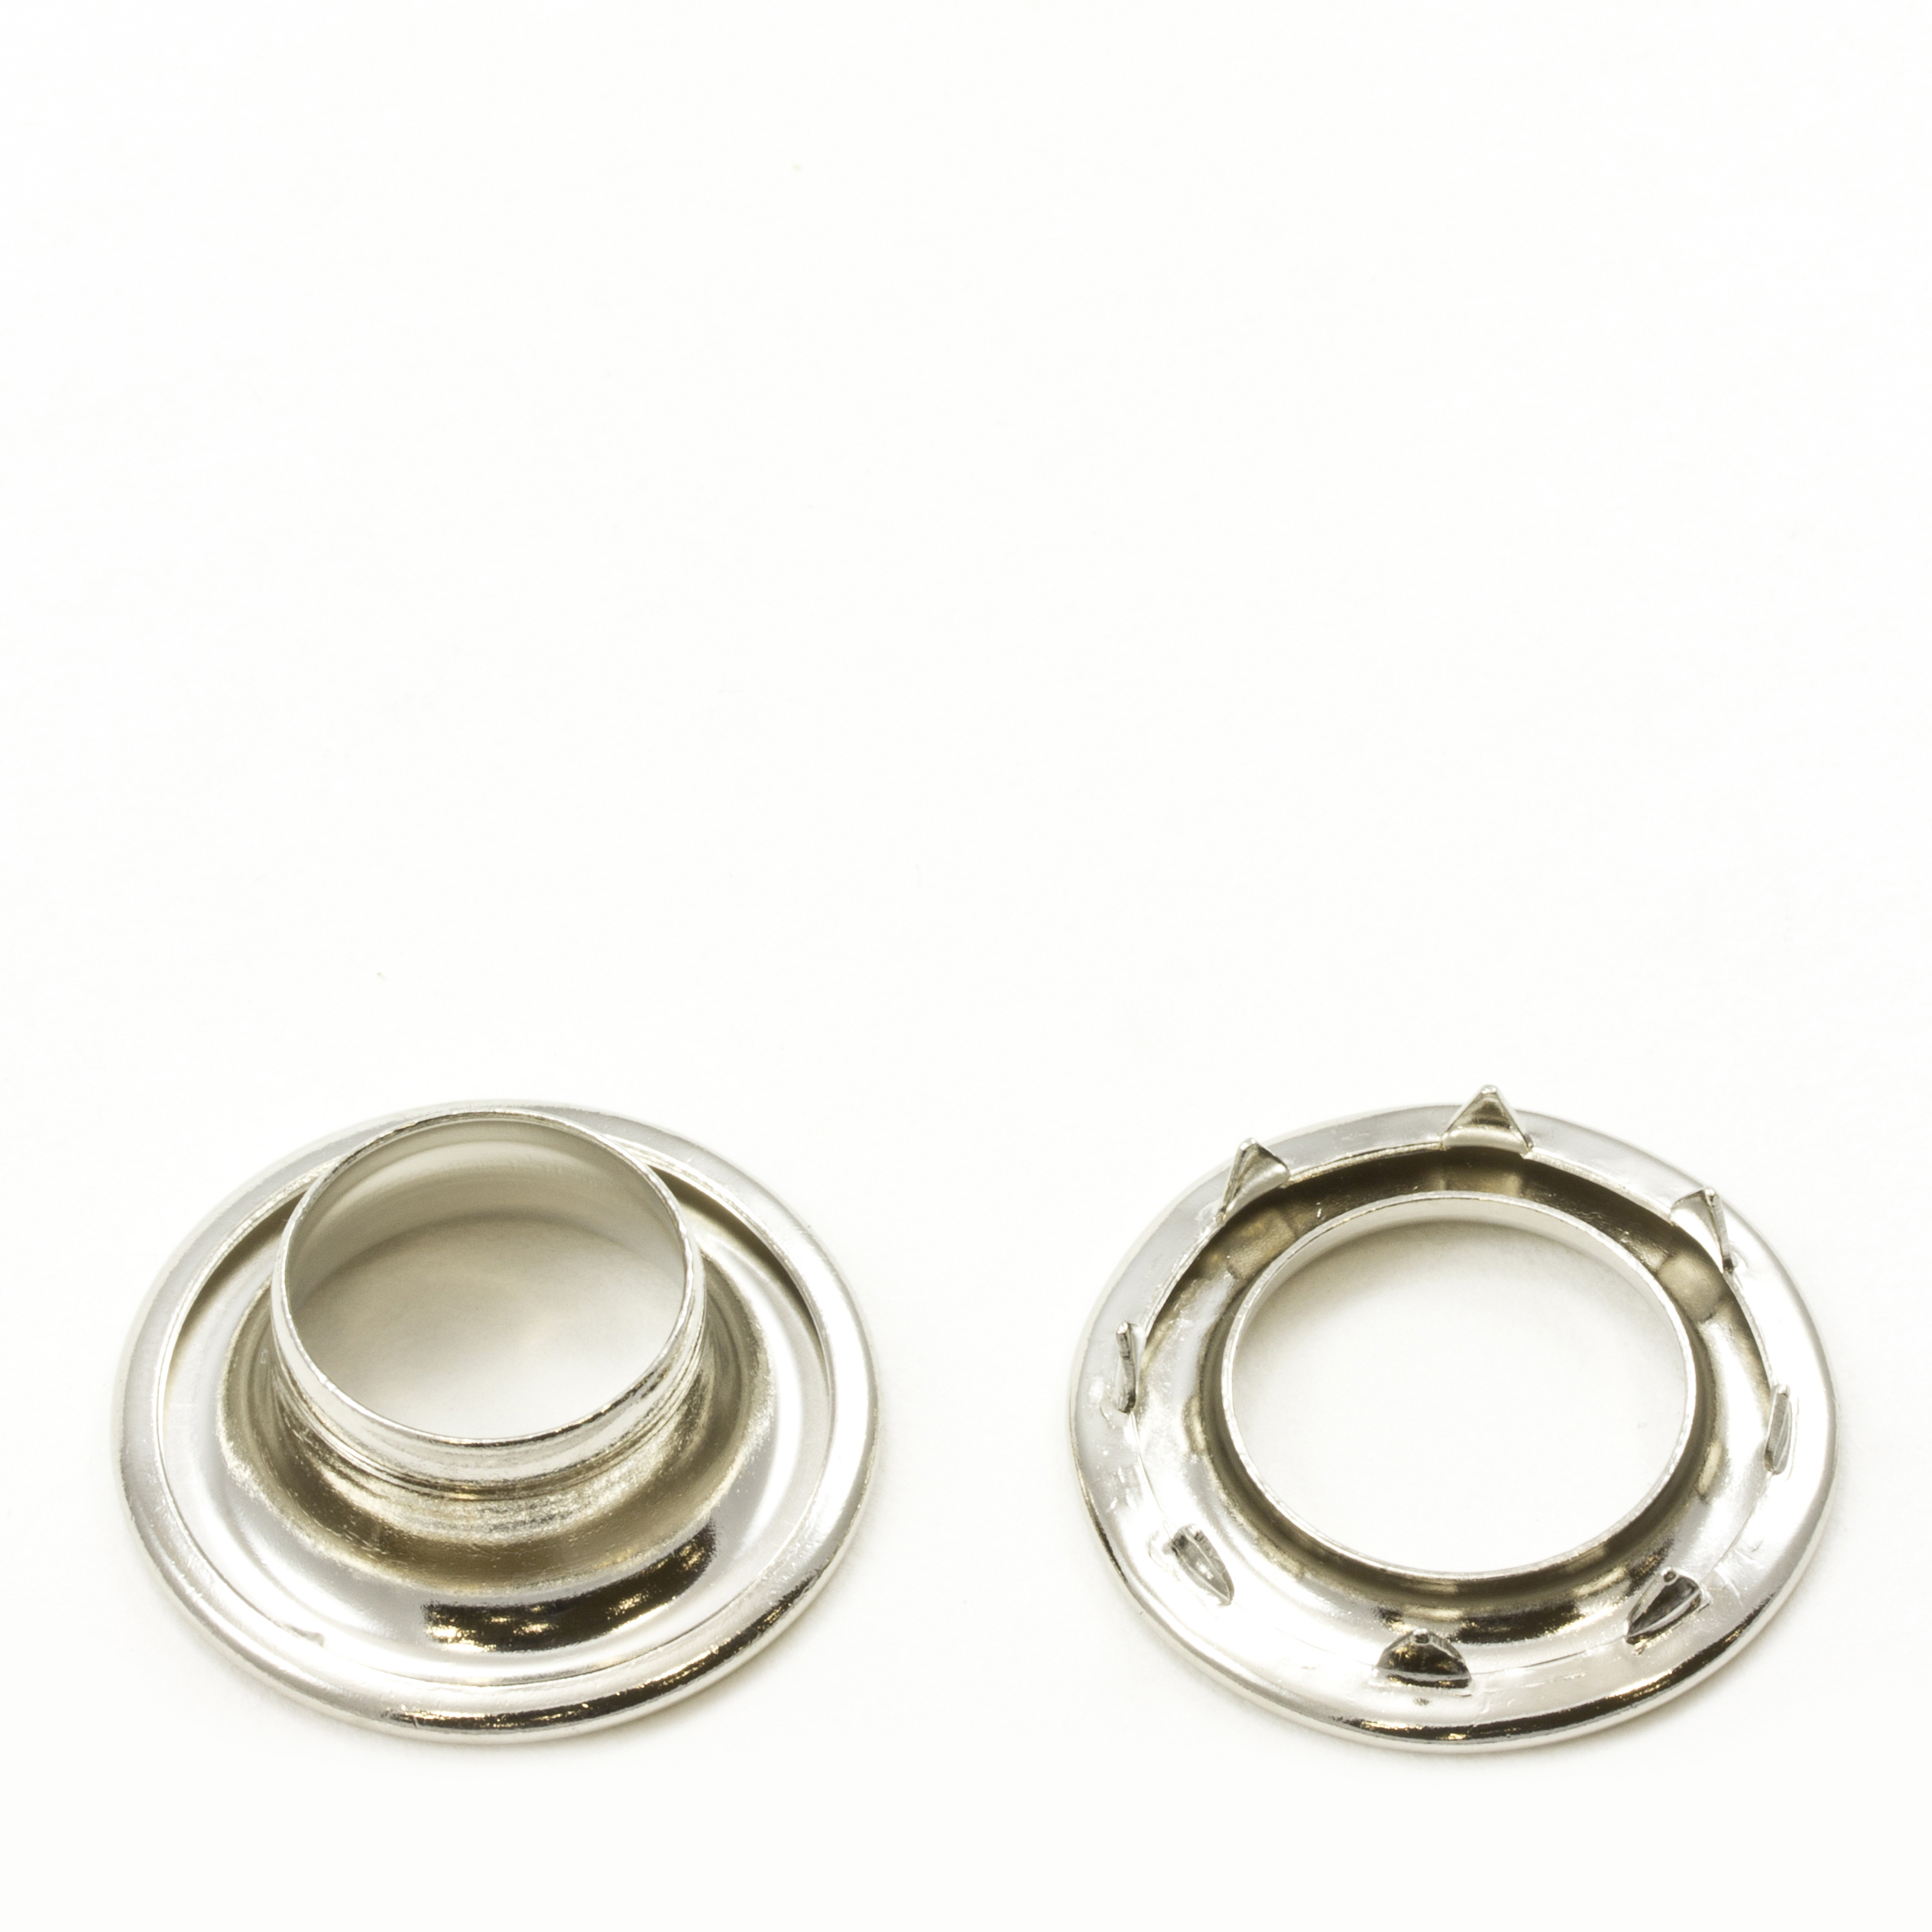 Rolled Rim Grommet with Spur Washer #4 Brass Nickel Plated 9/16